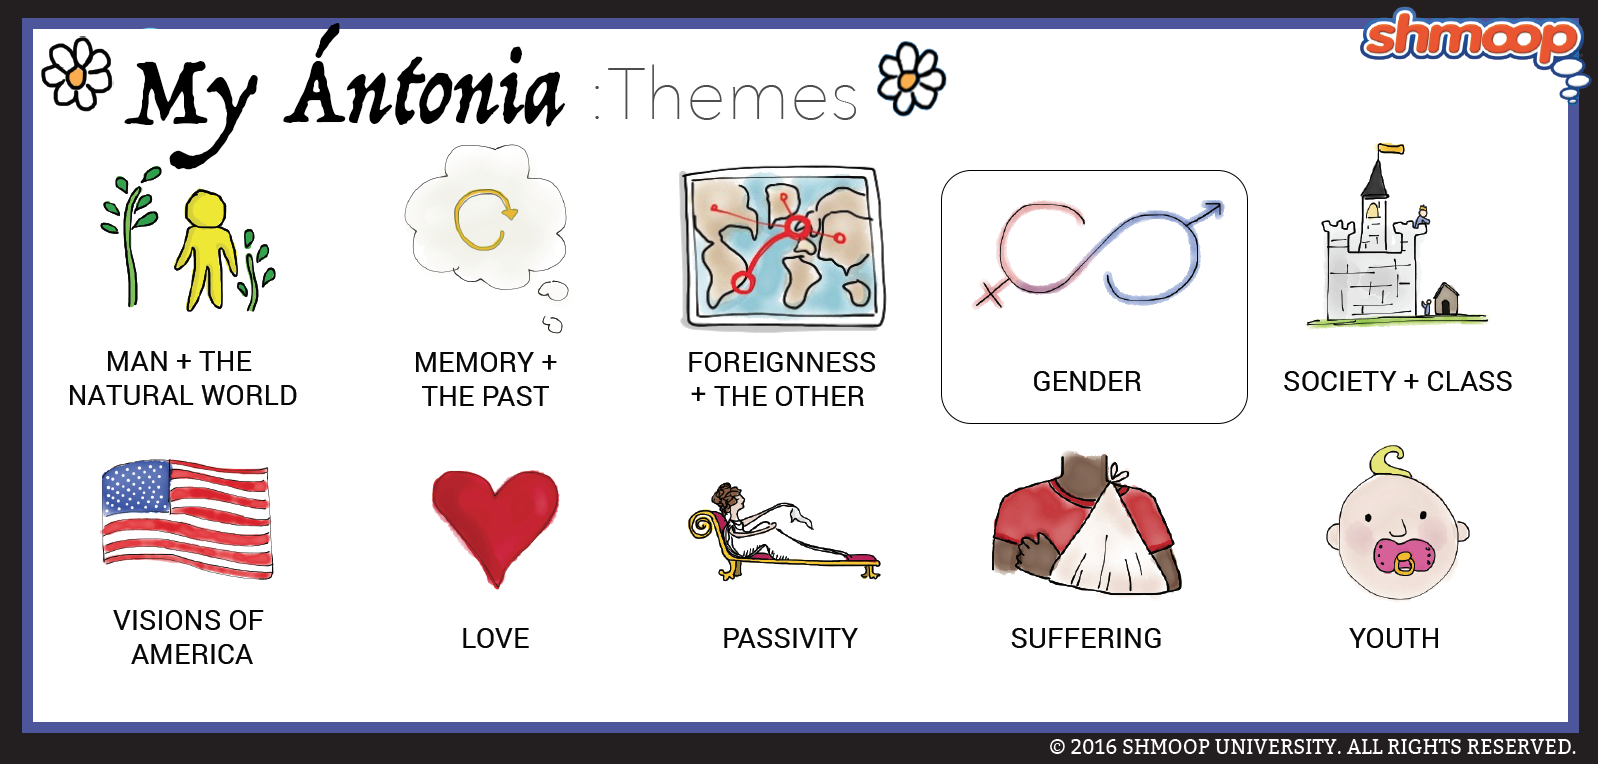 What are common themes in The Great Gatsby and My Antonia?